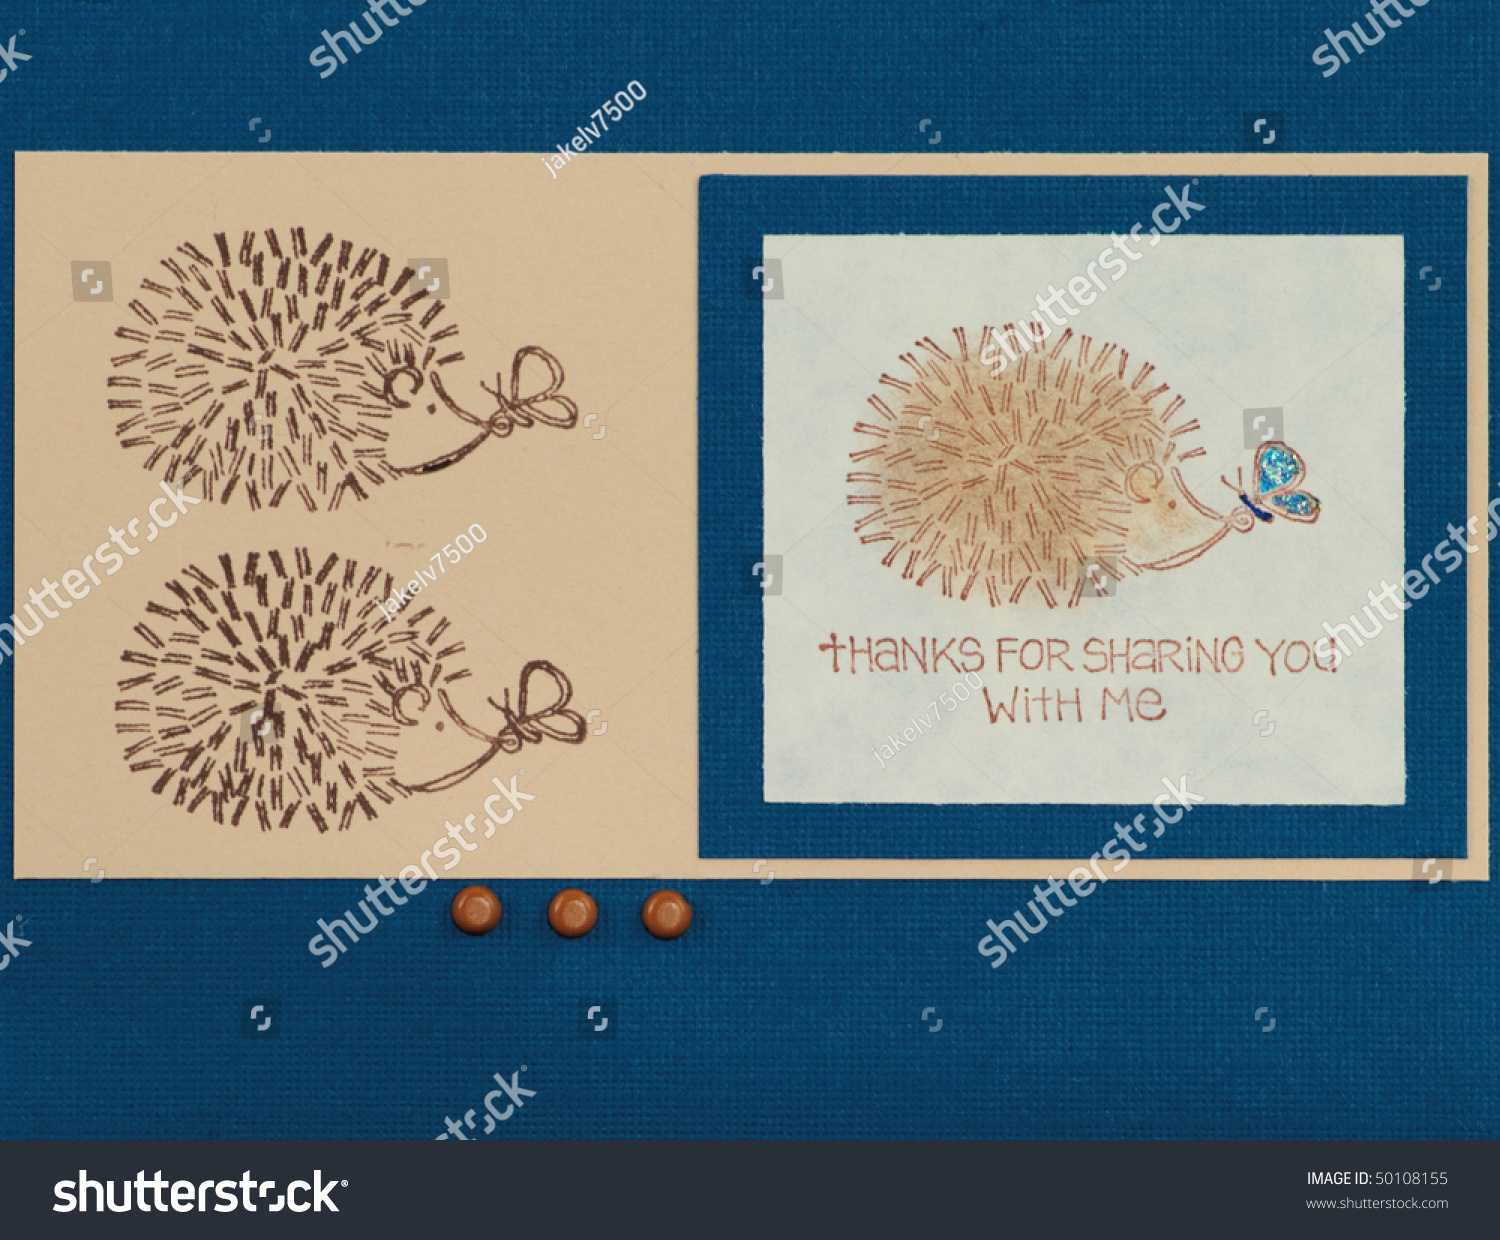 Paper craft greeting card face stock photo 50108155 for Craft paper card stock